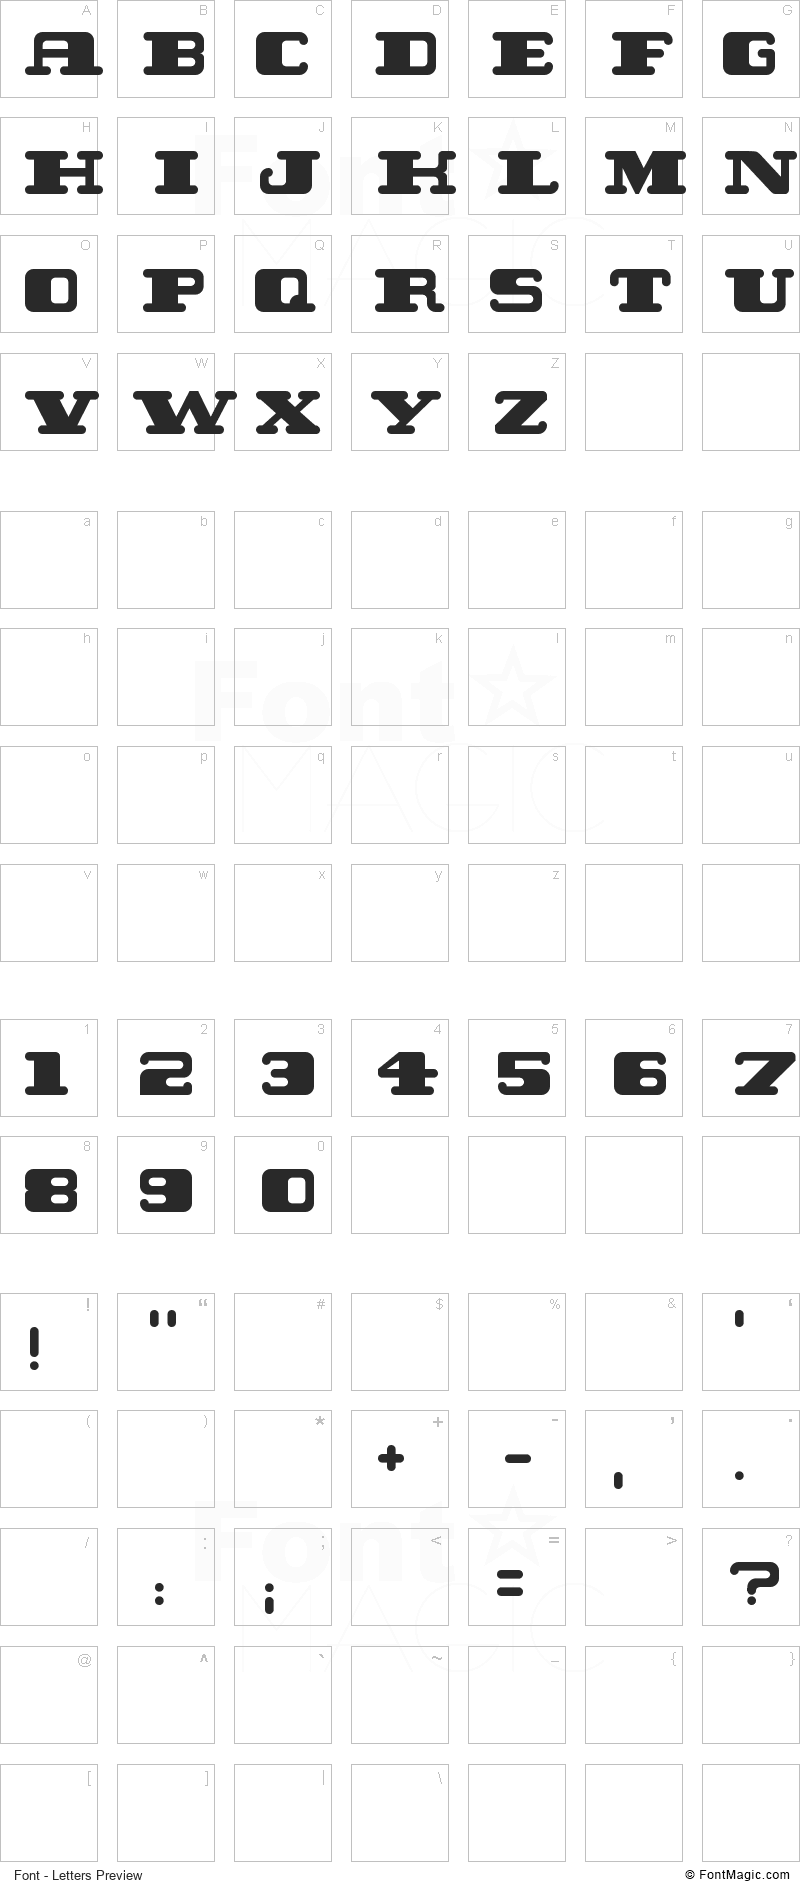 Twent Font - All Latters Preview Chart